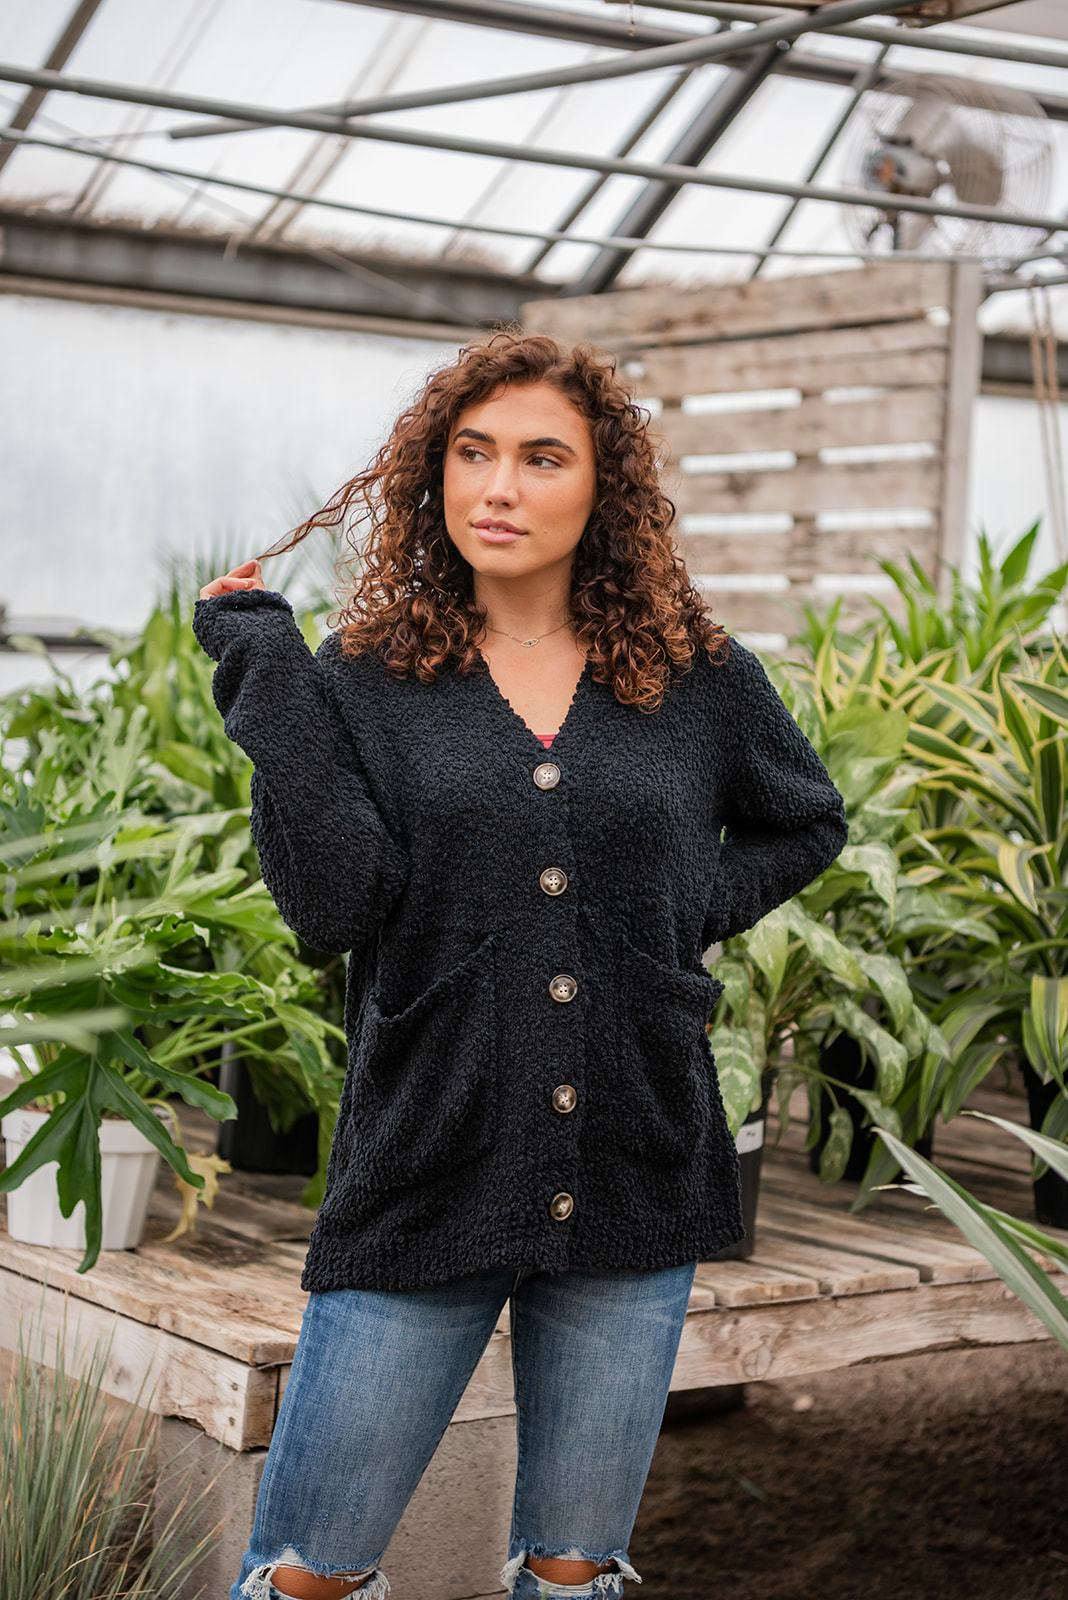 "Black Popcorn Cardigan Hoodie with a button front and pockets.   Fabric: 50% Acrylic 50% Polyester  Approx Measurements:  Small: Bust 42"", Length 29""  Medium: Bust 46"", Length 29""  Large: Bust 48"", Length 29""  1X; Bust 52"", Length 29""  2X: Bust 53"", Length 31""  3X: Bust 54"", Length 32""  Model Paityn: 5'7 size 2/3 wearing size Small"